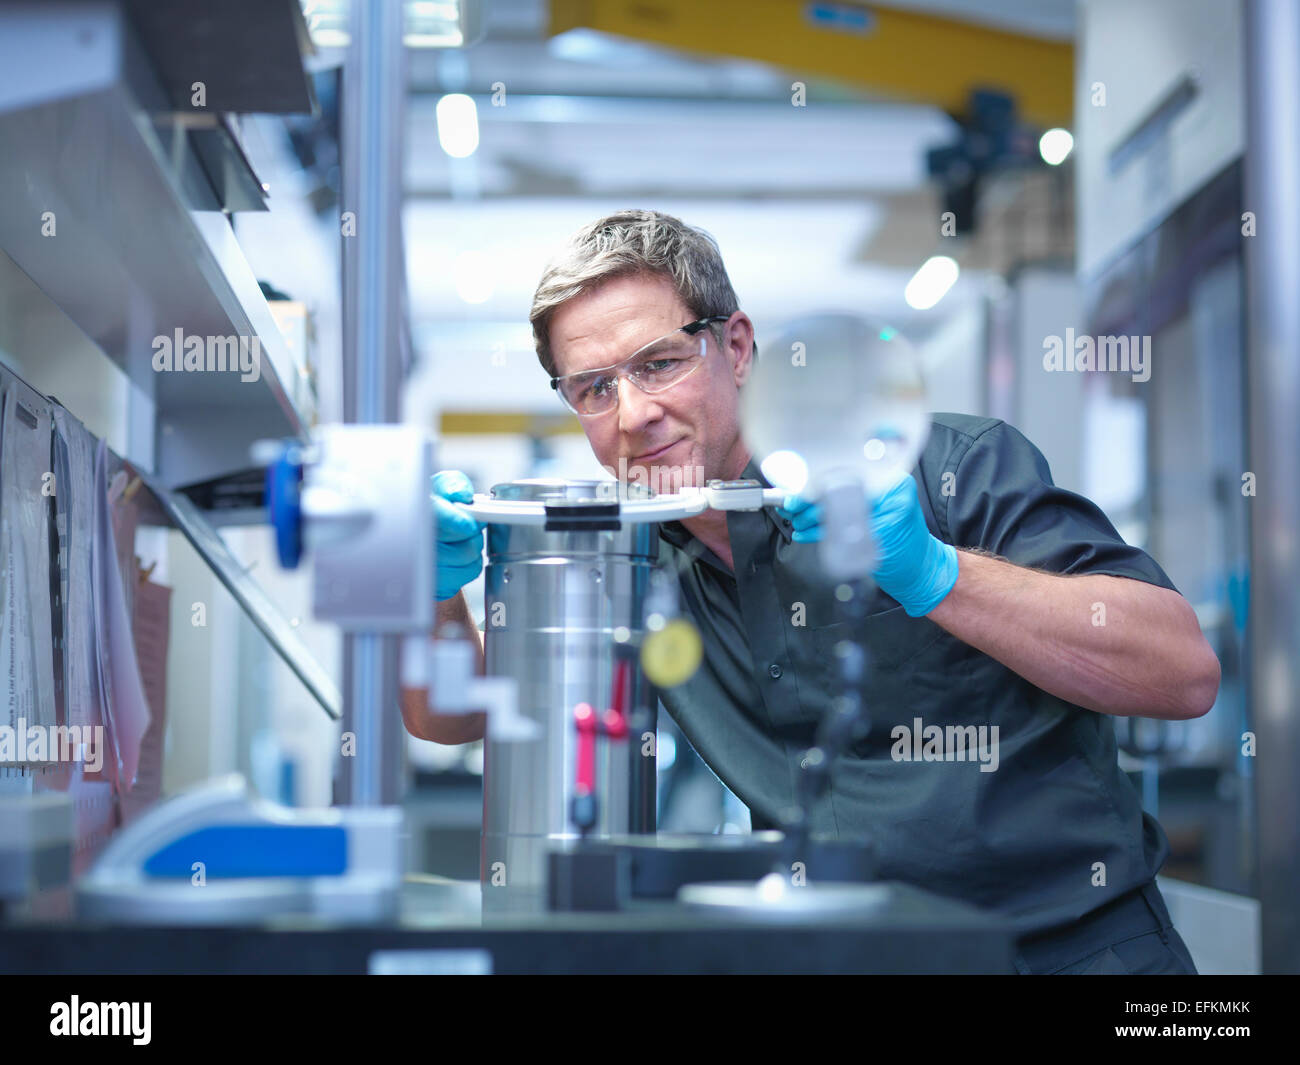 Engineer inspecting part at work station in engineering factory - Stock Image